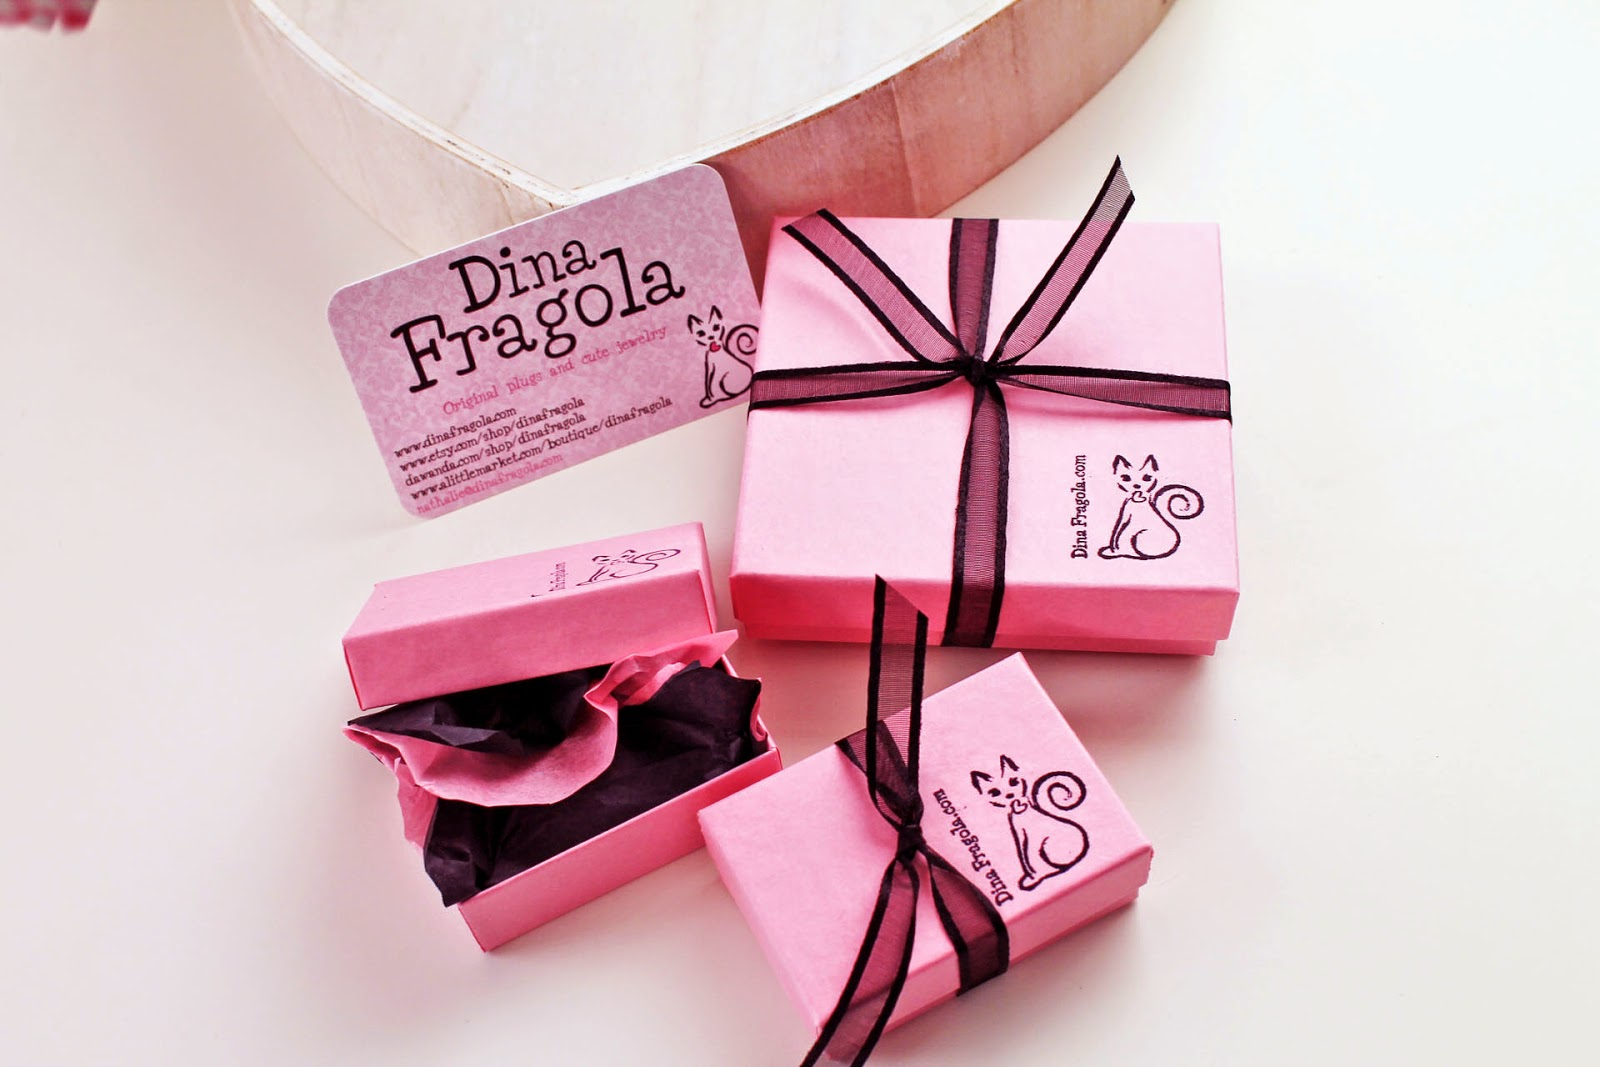 Dina Fragola: New packaging